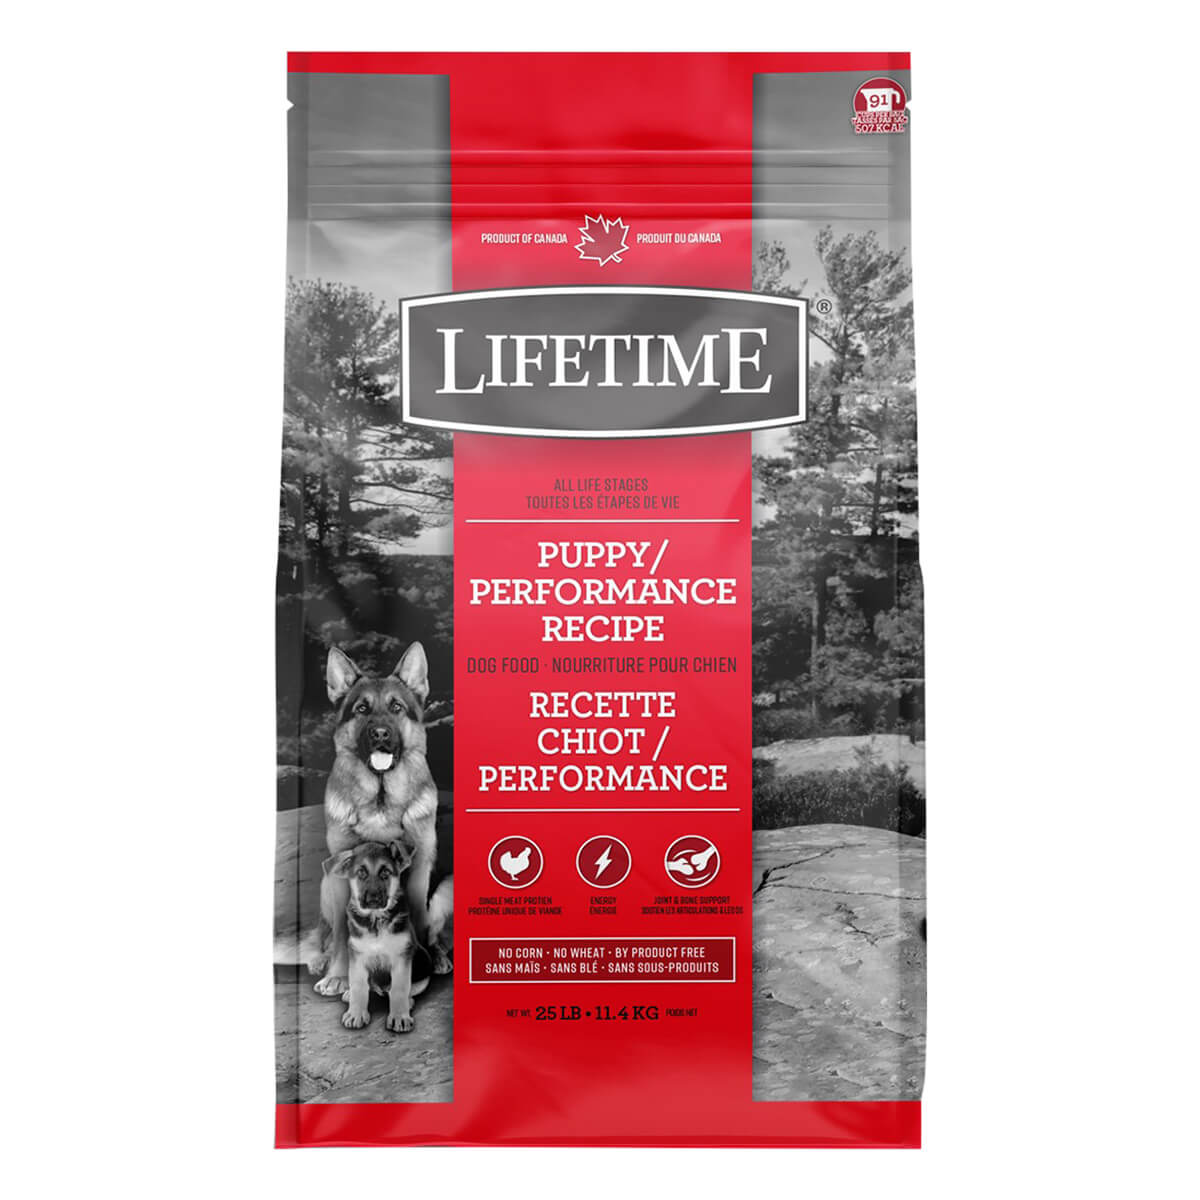 Lifetime Puppy/Performance Dog Food - 11.4 kg